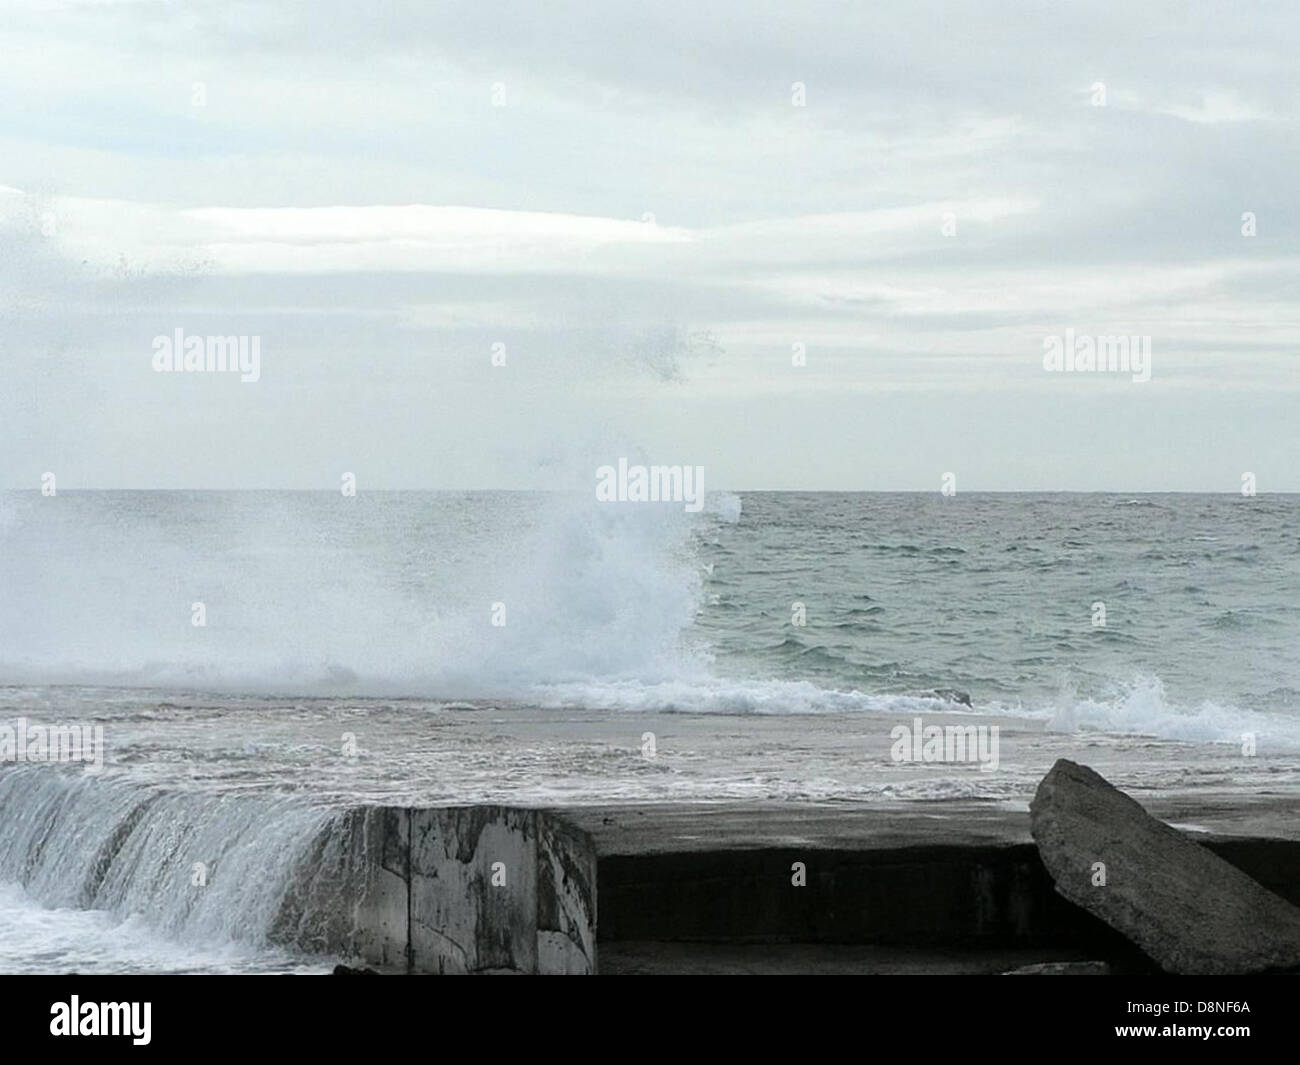 Wave breaking on rocks on the beach. - Stock Image